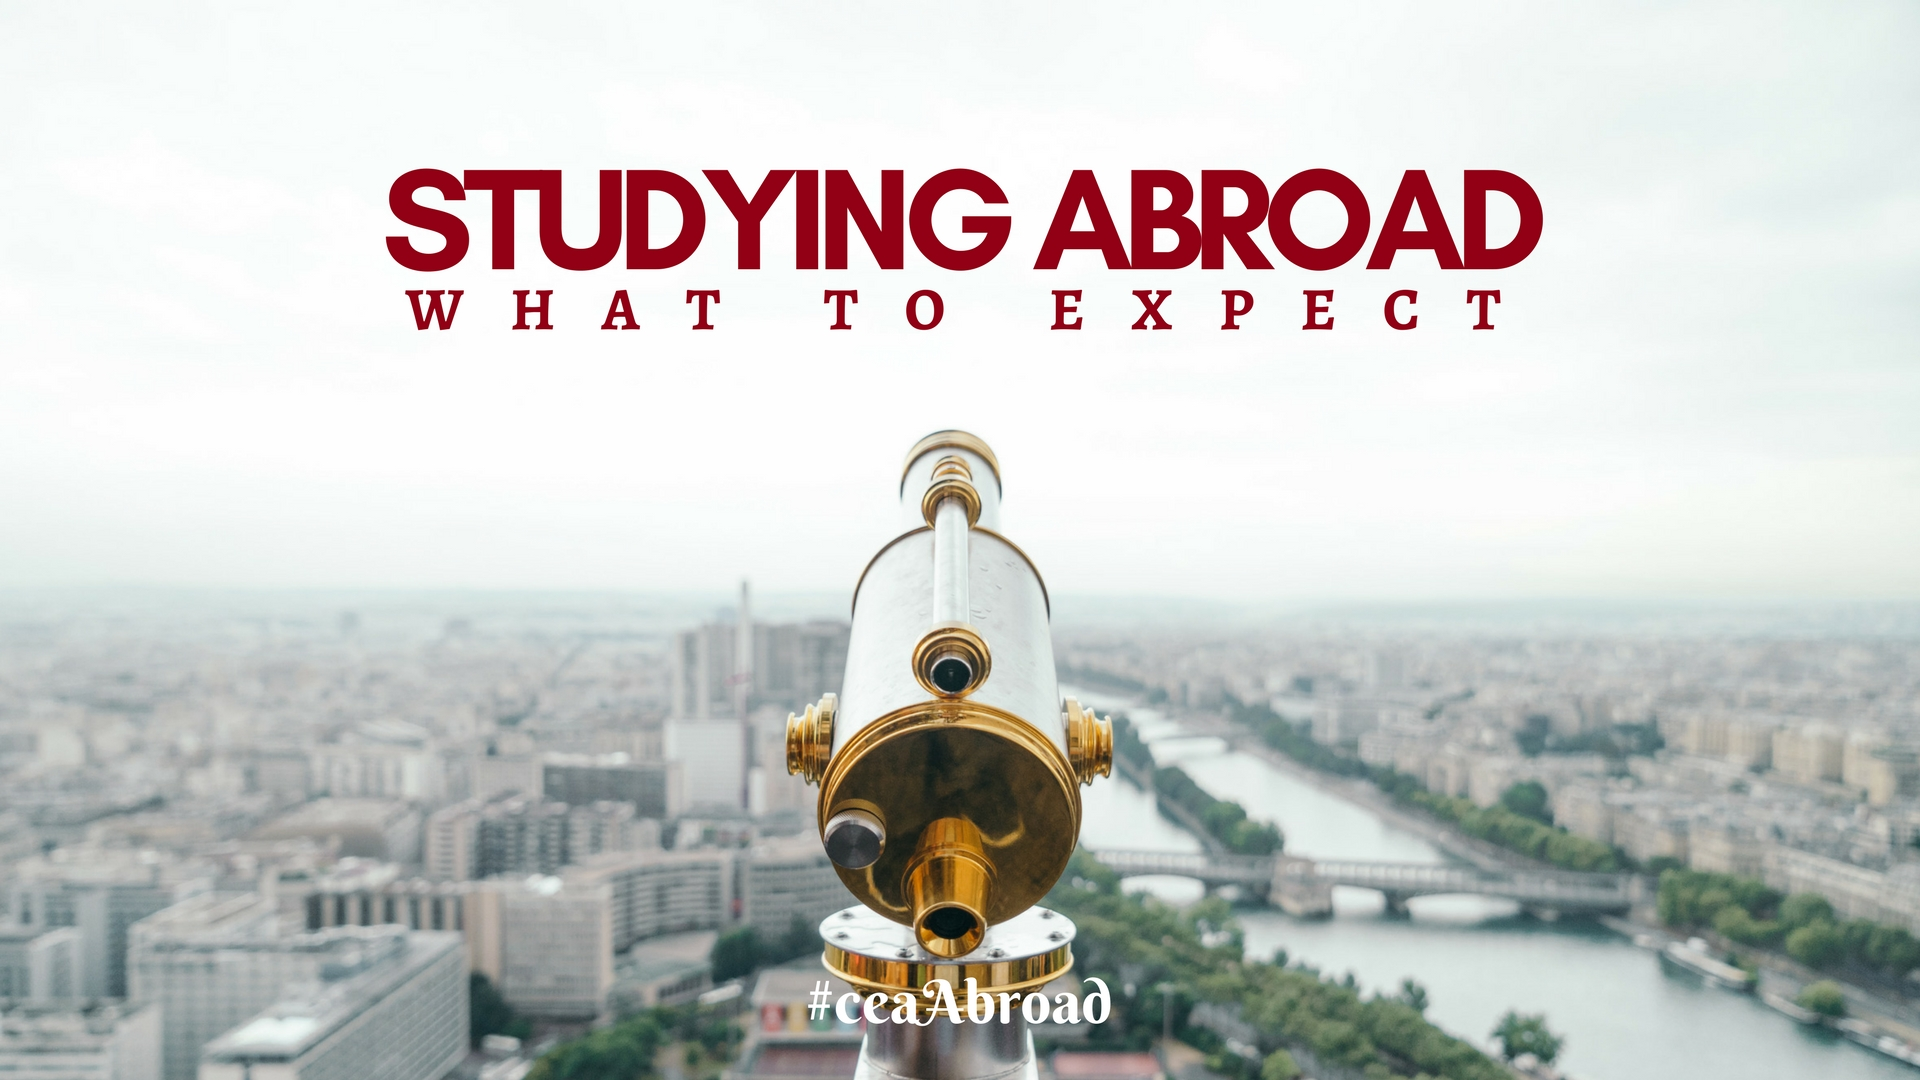 Why Should Your Child Go Abroad?